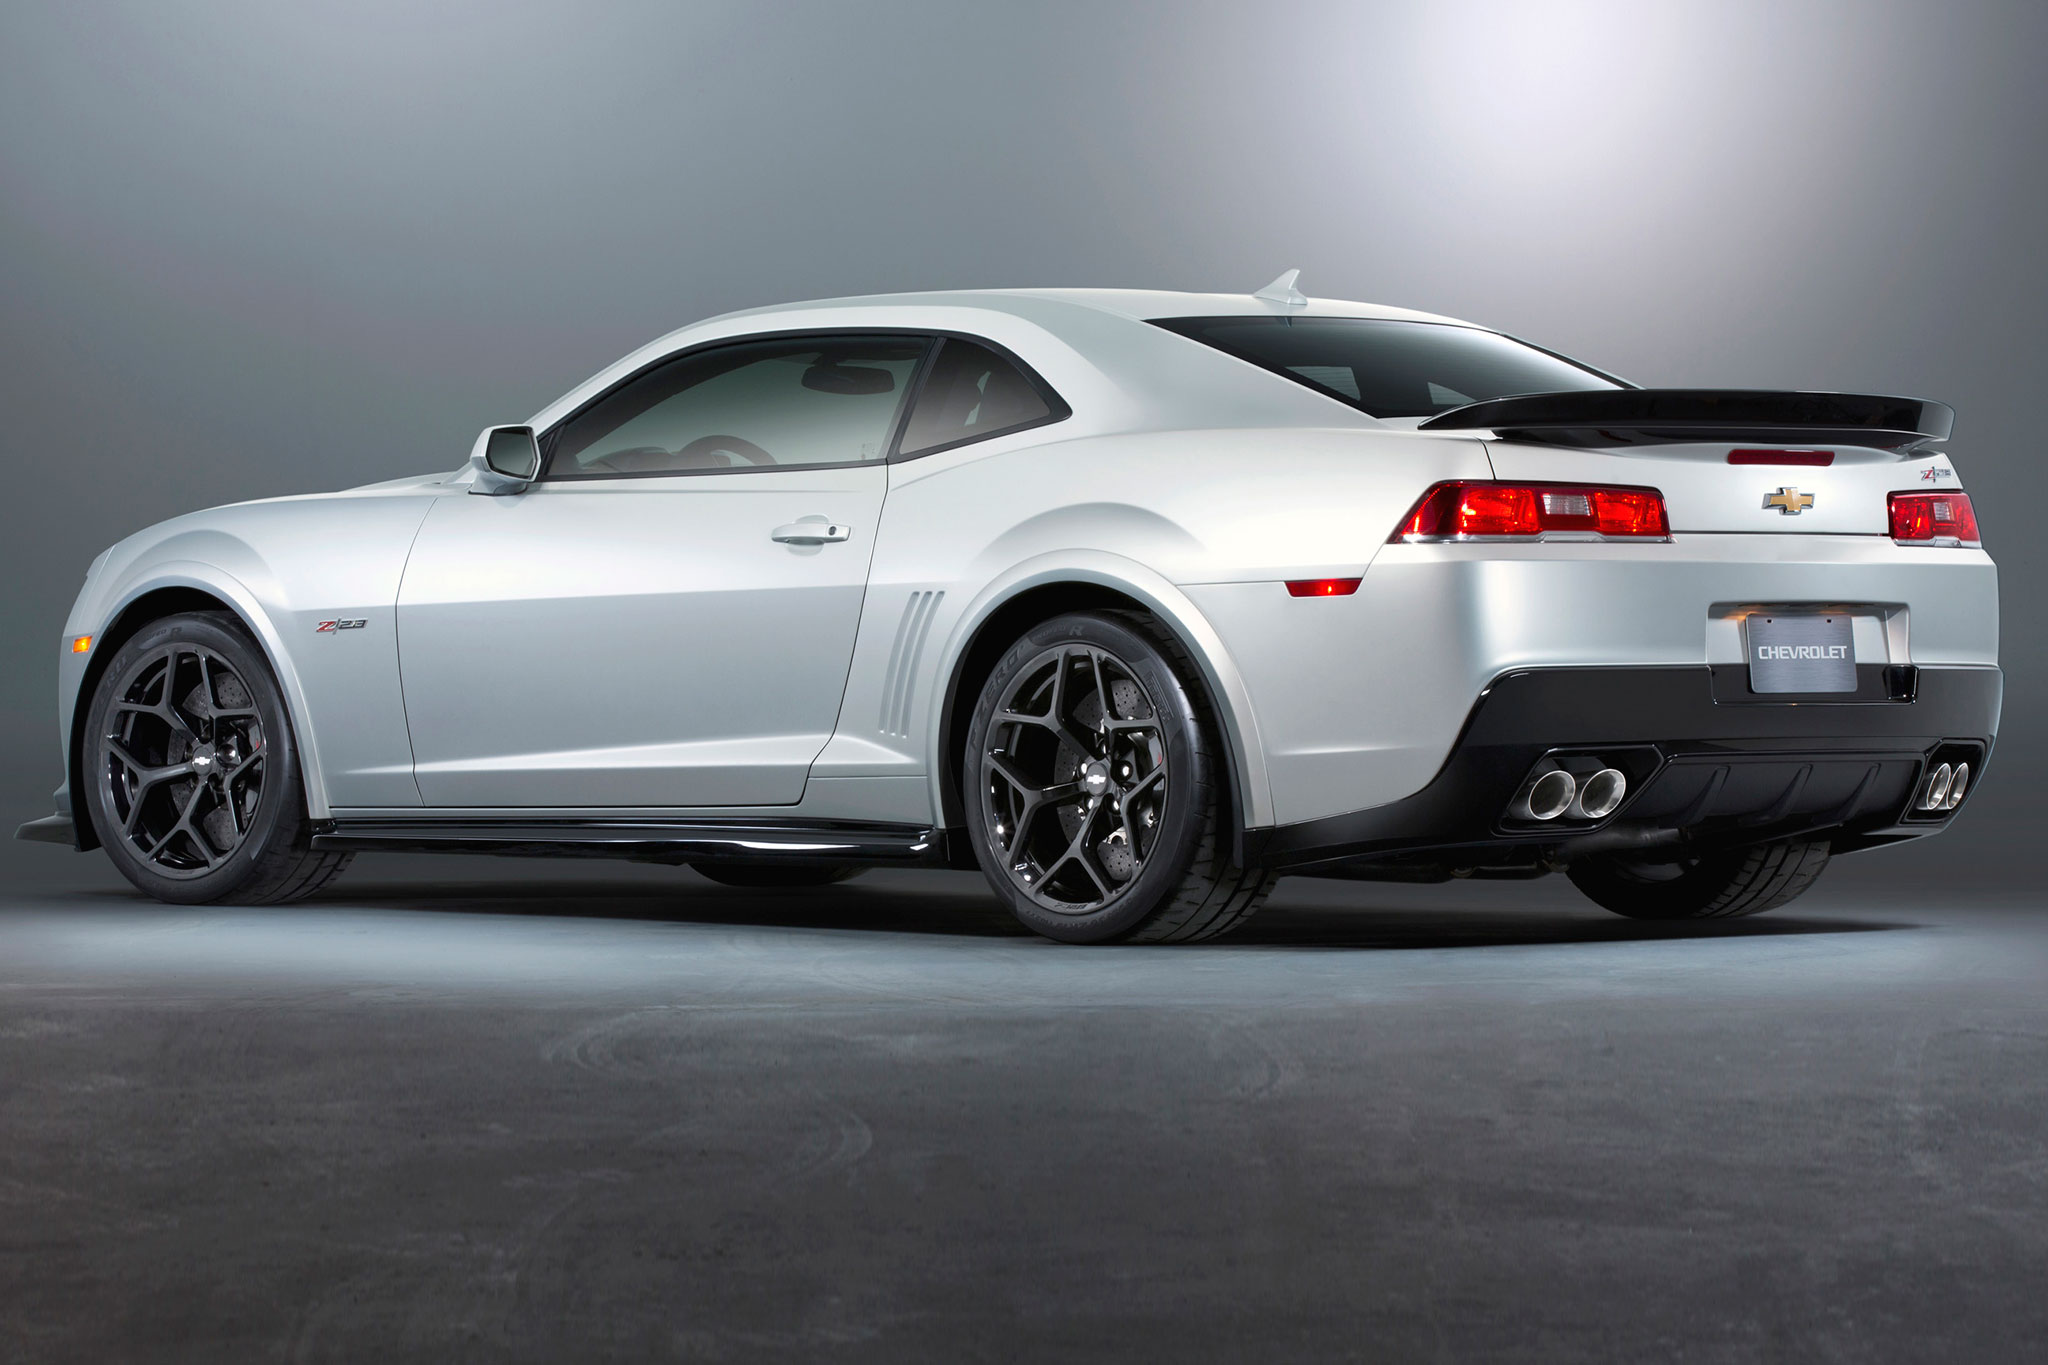 2014 Chevrolet Camaro Z28 Rear Drivers Side View1